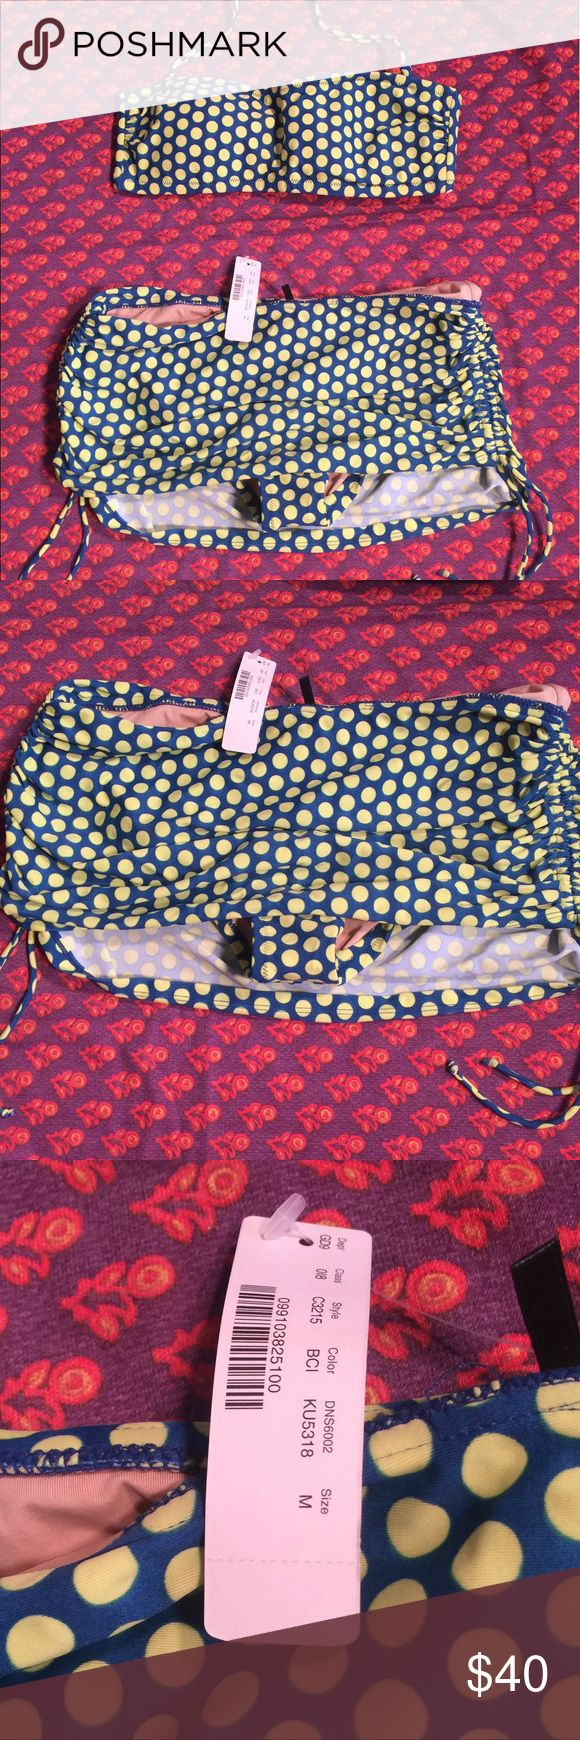 J Crew graphic dot bandeau skirted bottom bikini M Adorable retro style J Crew bikini. Graphic dot with blue background and green dots. Top is bandeau style with removable straps and pads. Bottom is skirted with drawstrings. Stock photo is provided to show fit of bottom. Brand new with tags. Size medium J. Crew Swim Bikinis